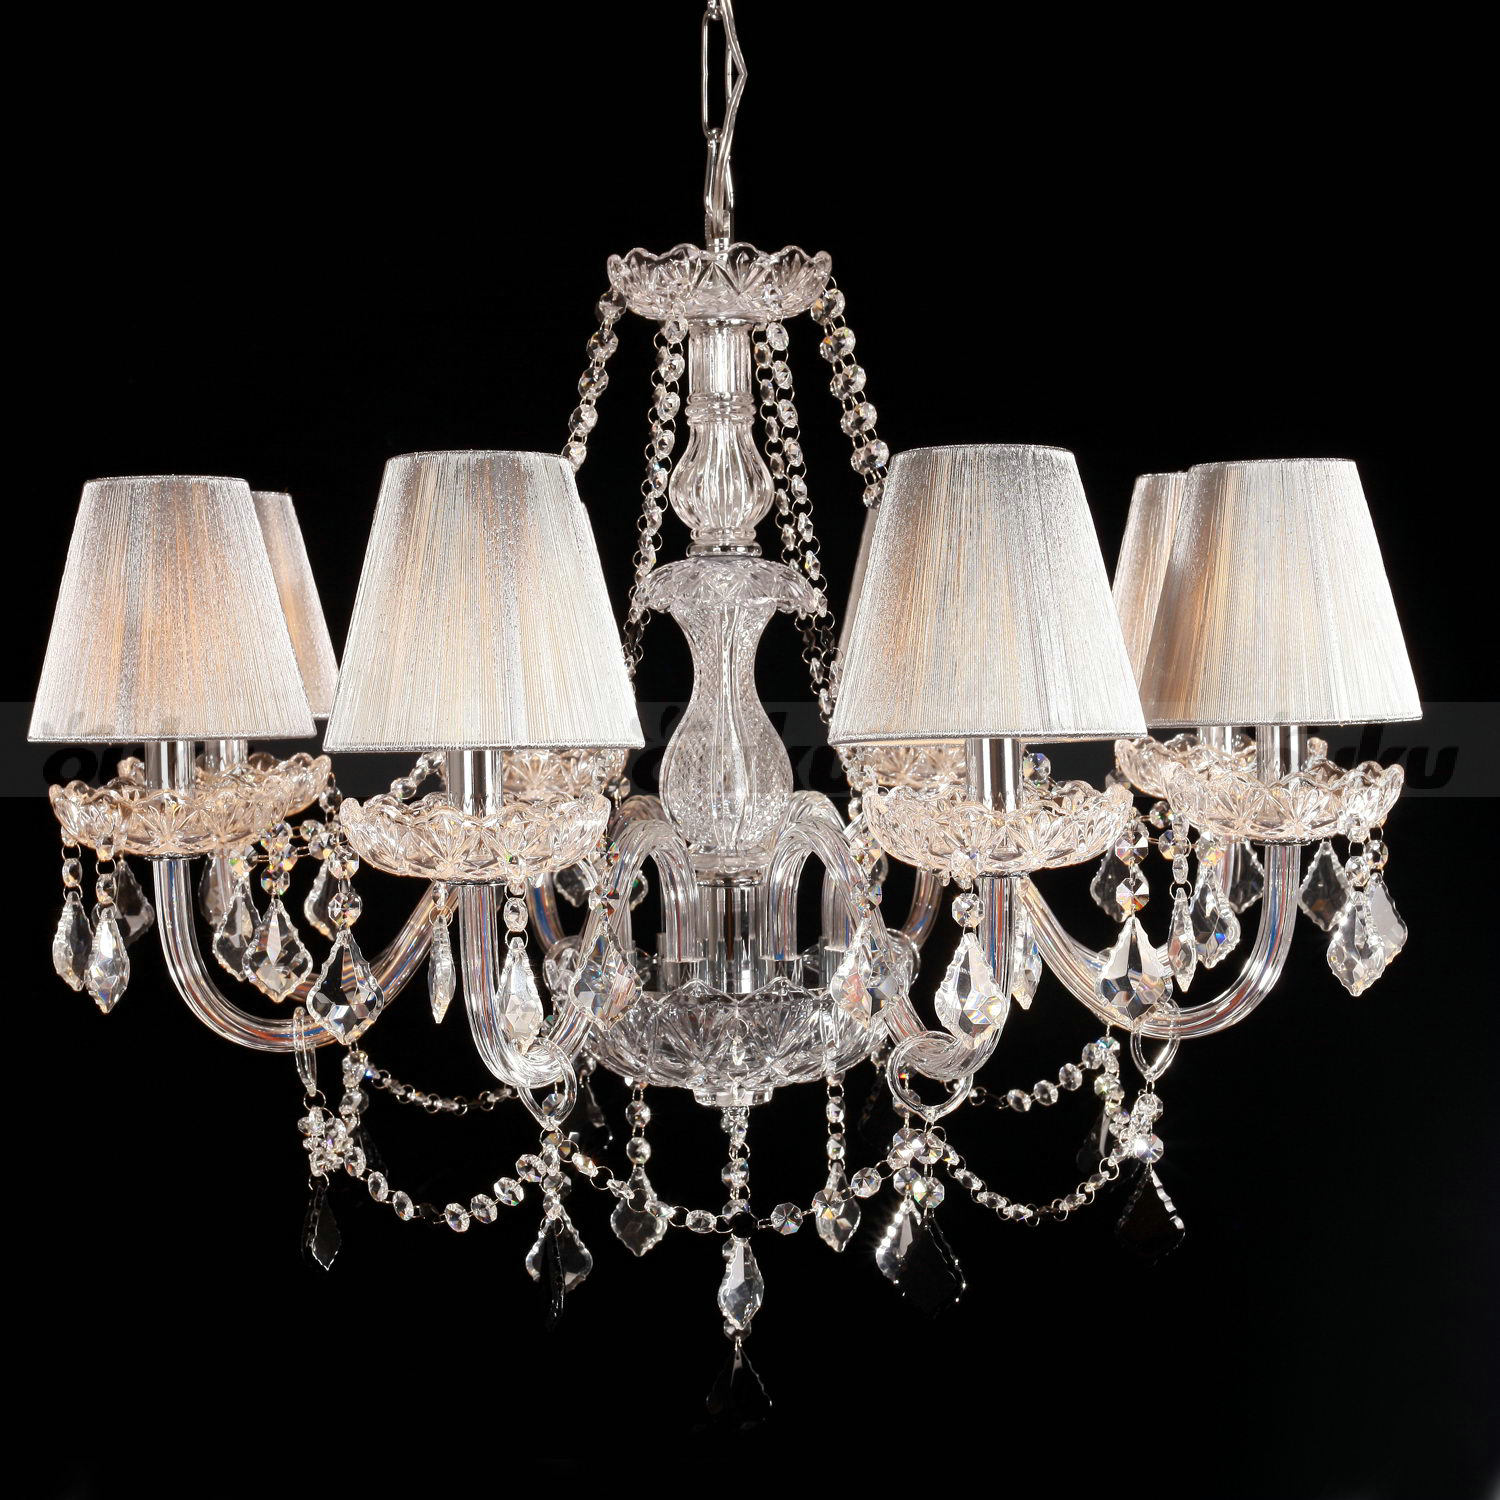 8 LIGHT CHANDELIER CRYSTAL WITH SHADES HAND BLOWN KITCHEN